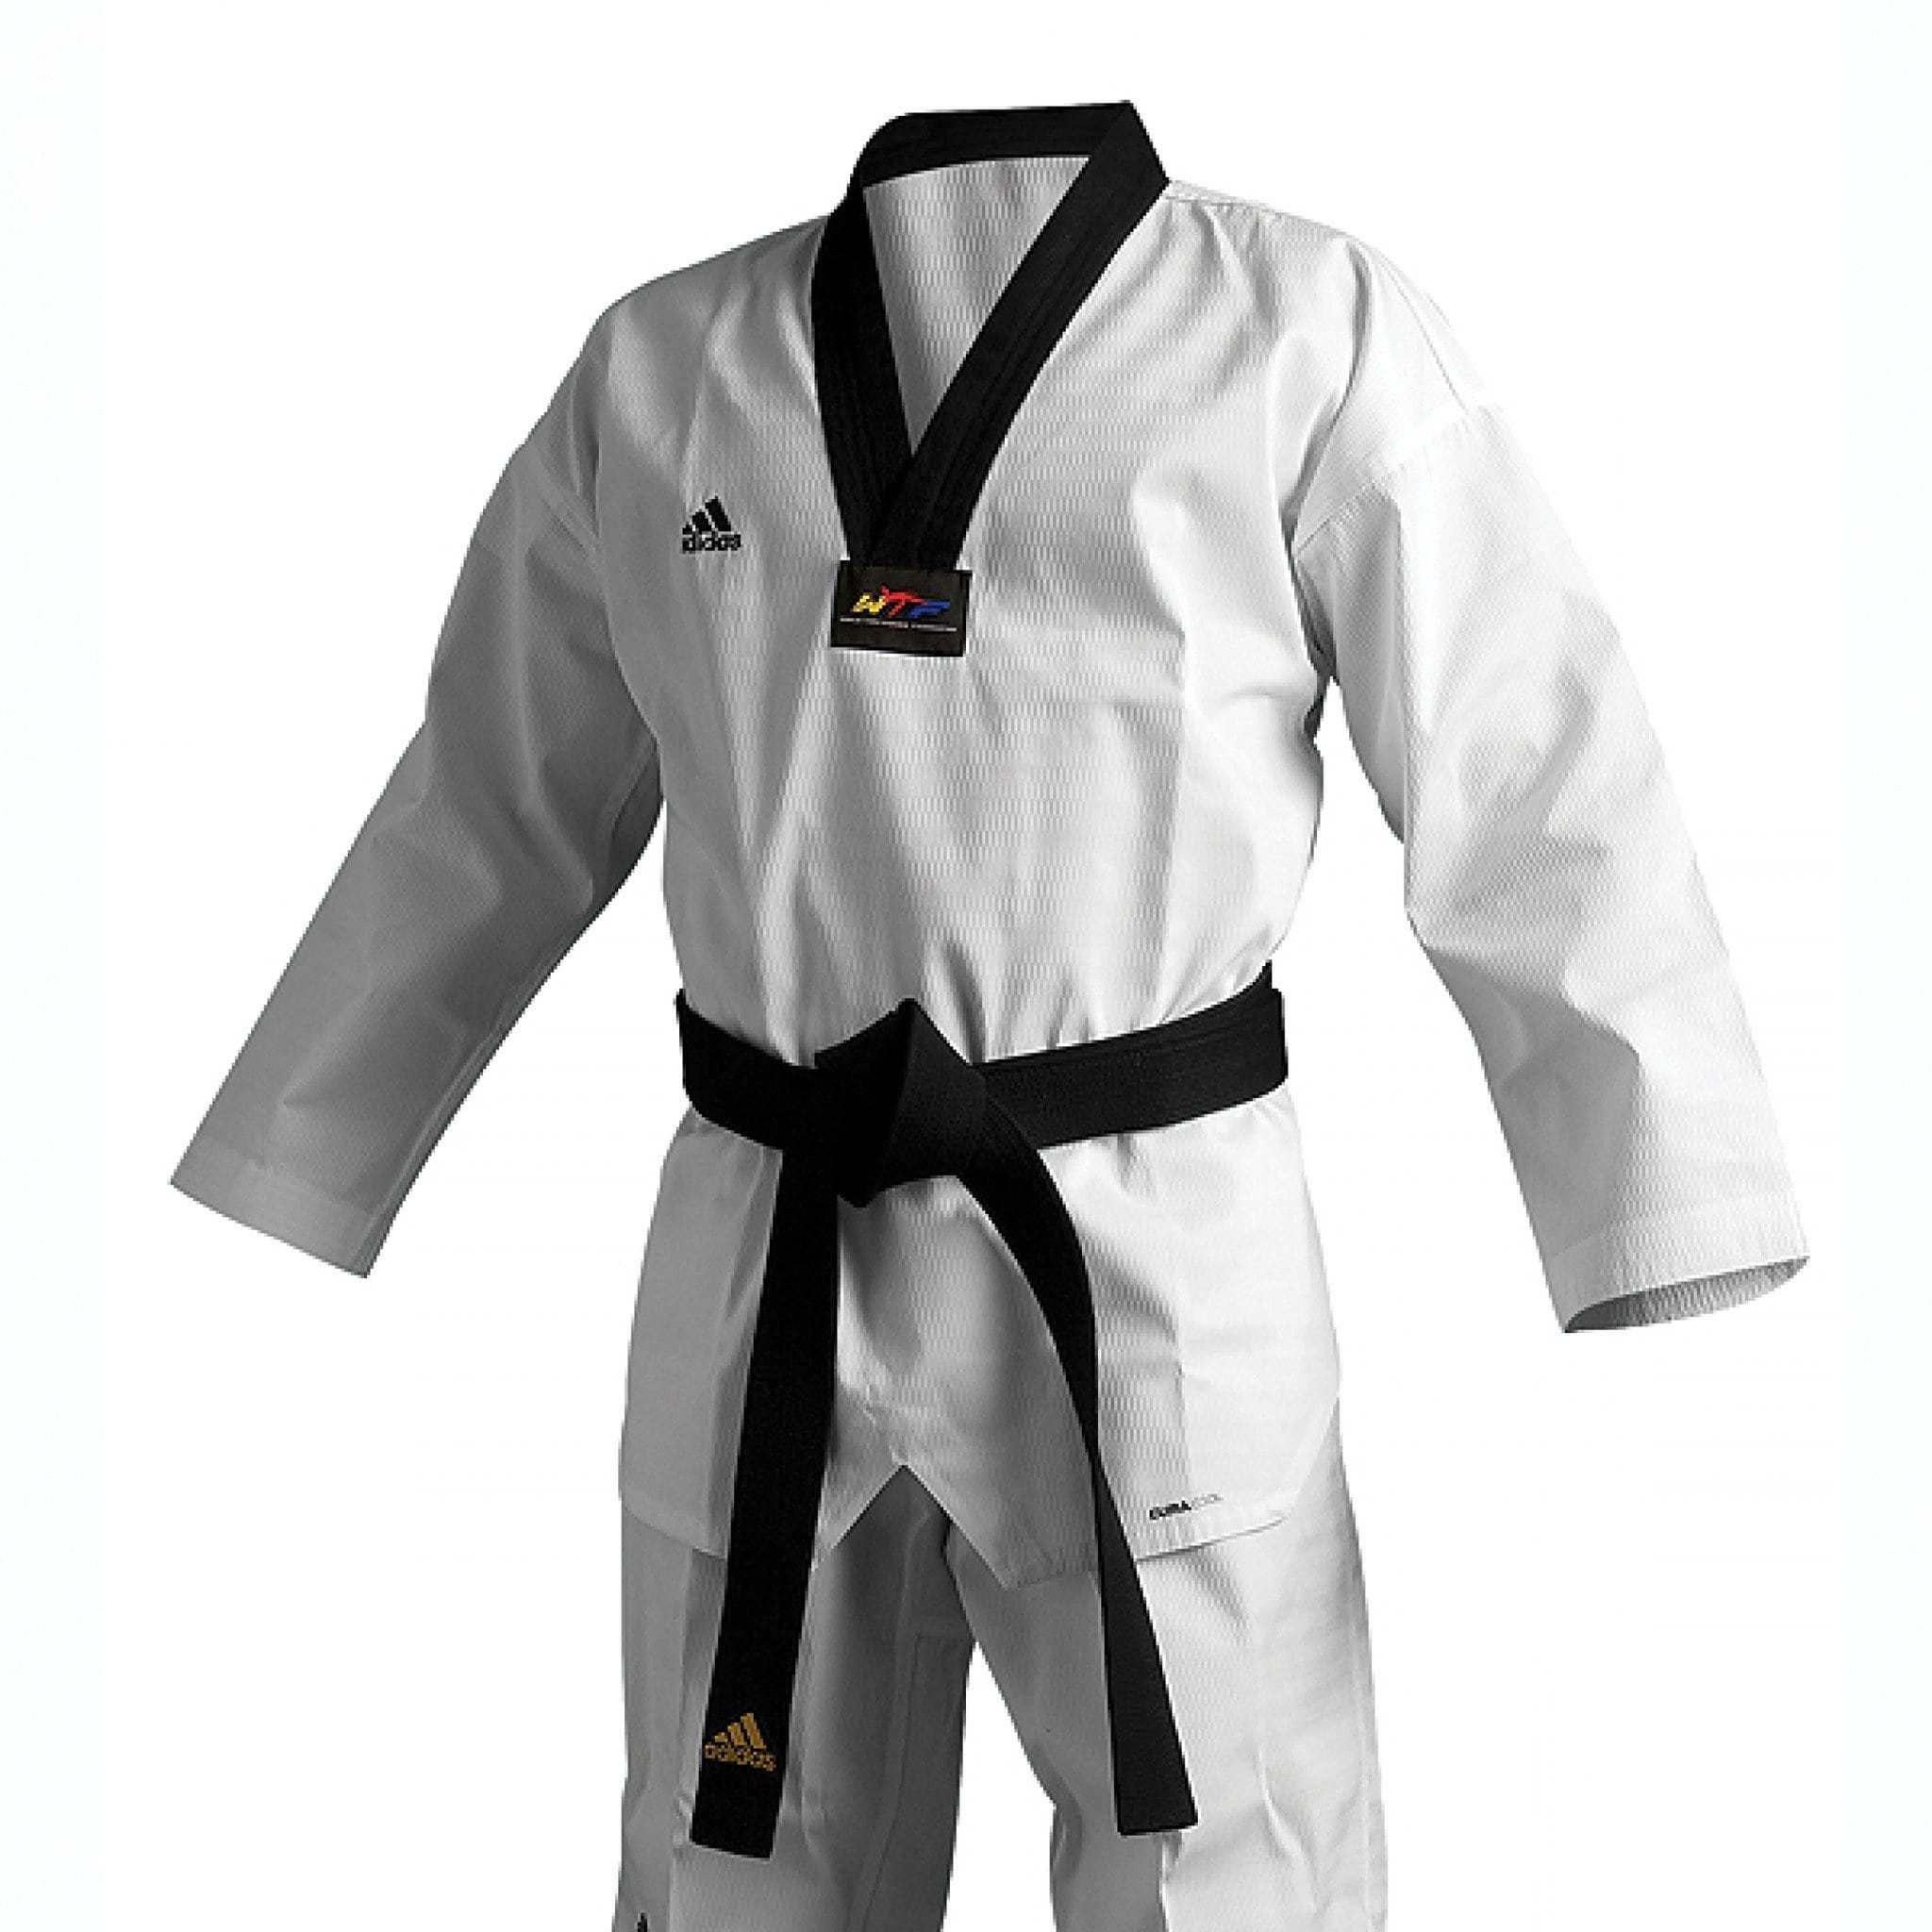 black lapel ADI-CHAMP III TKD UNIFORM